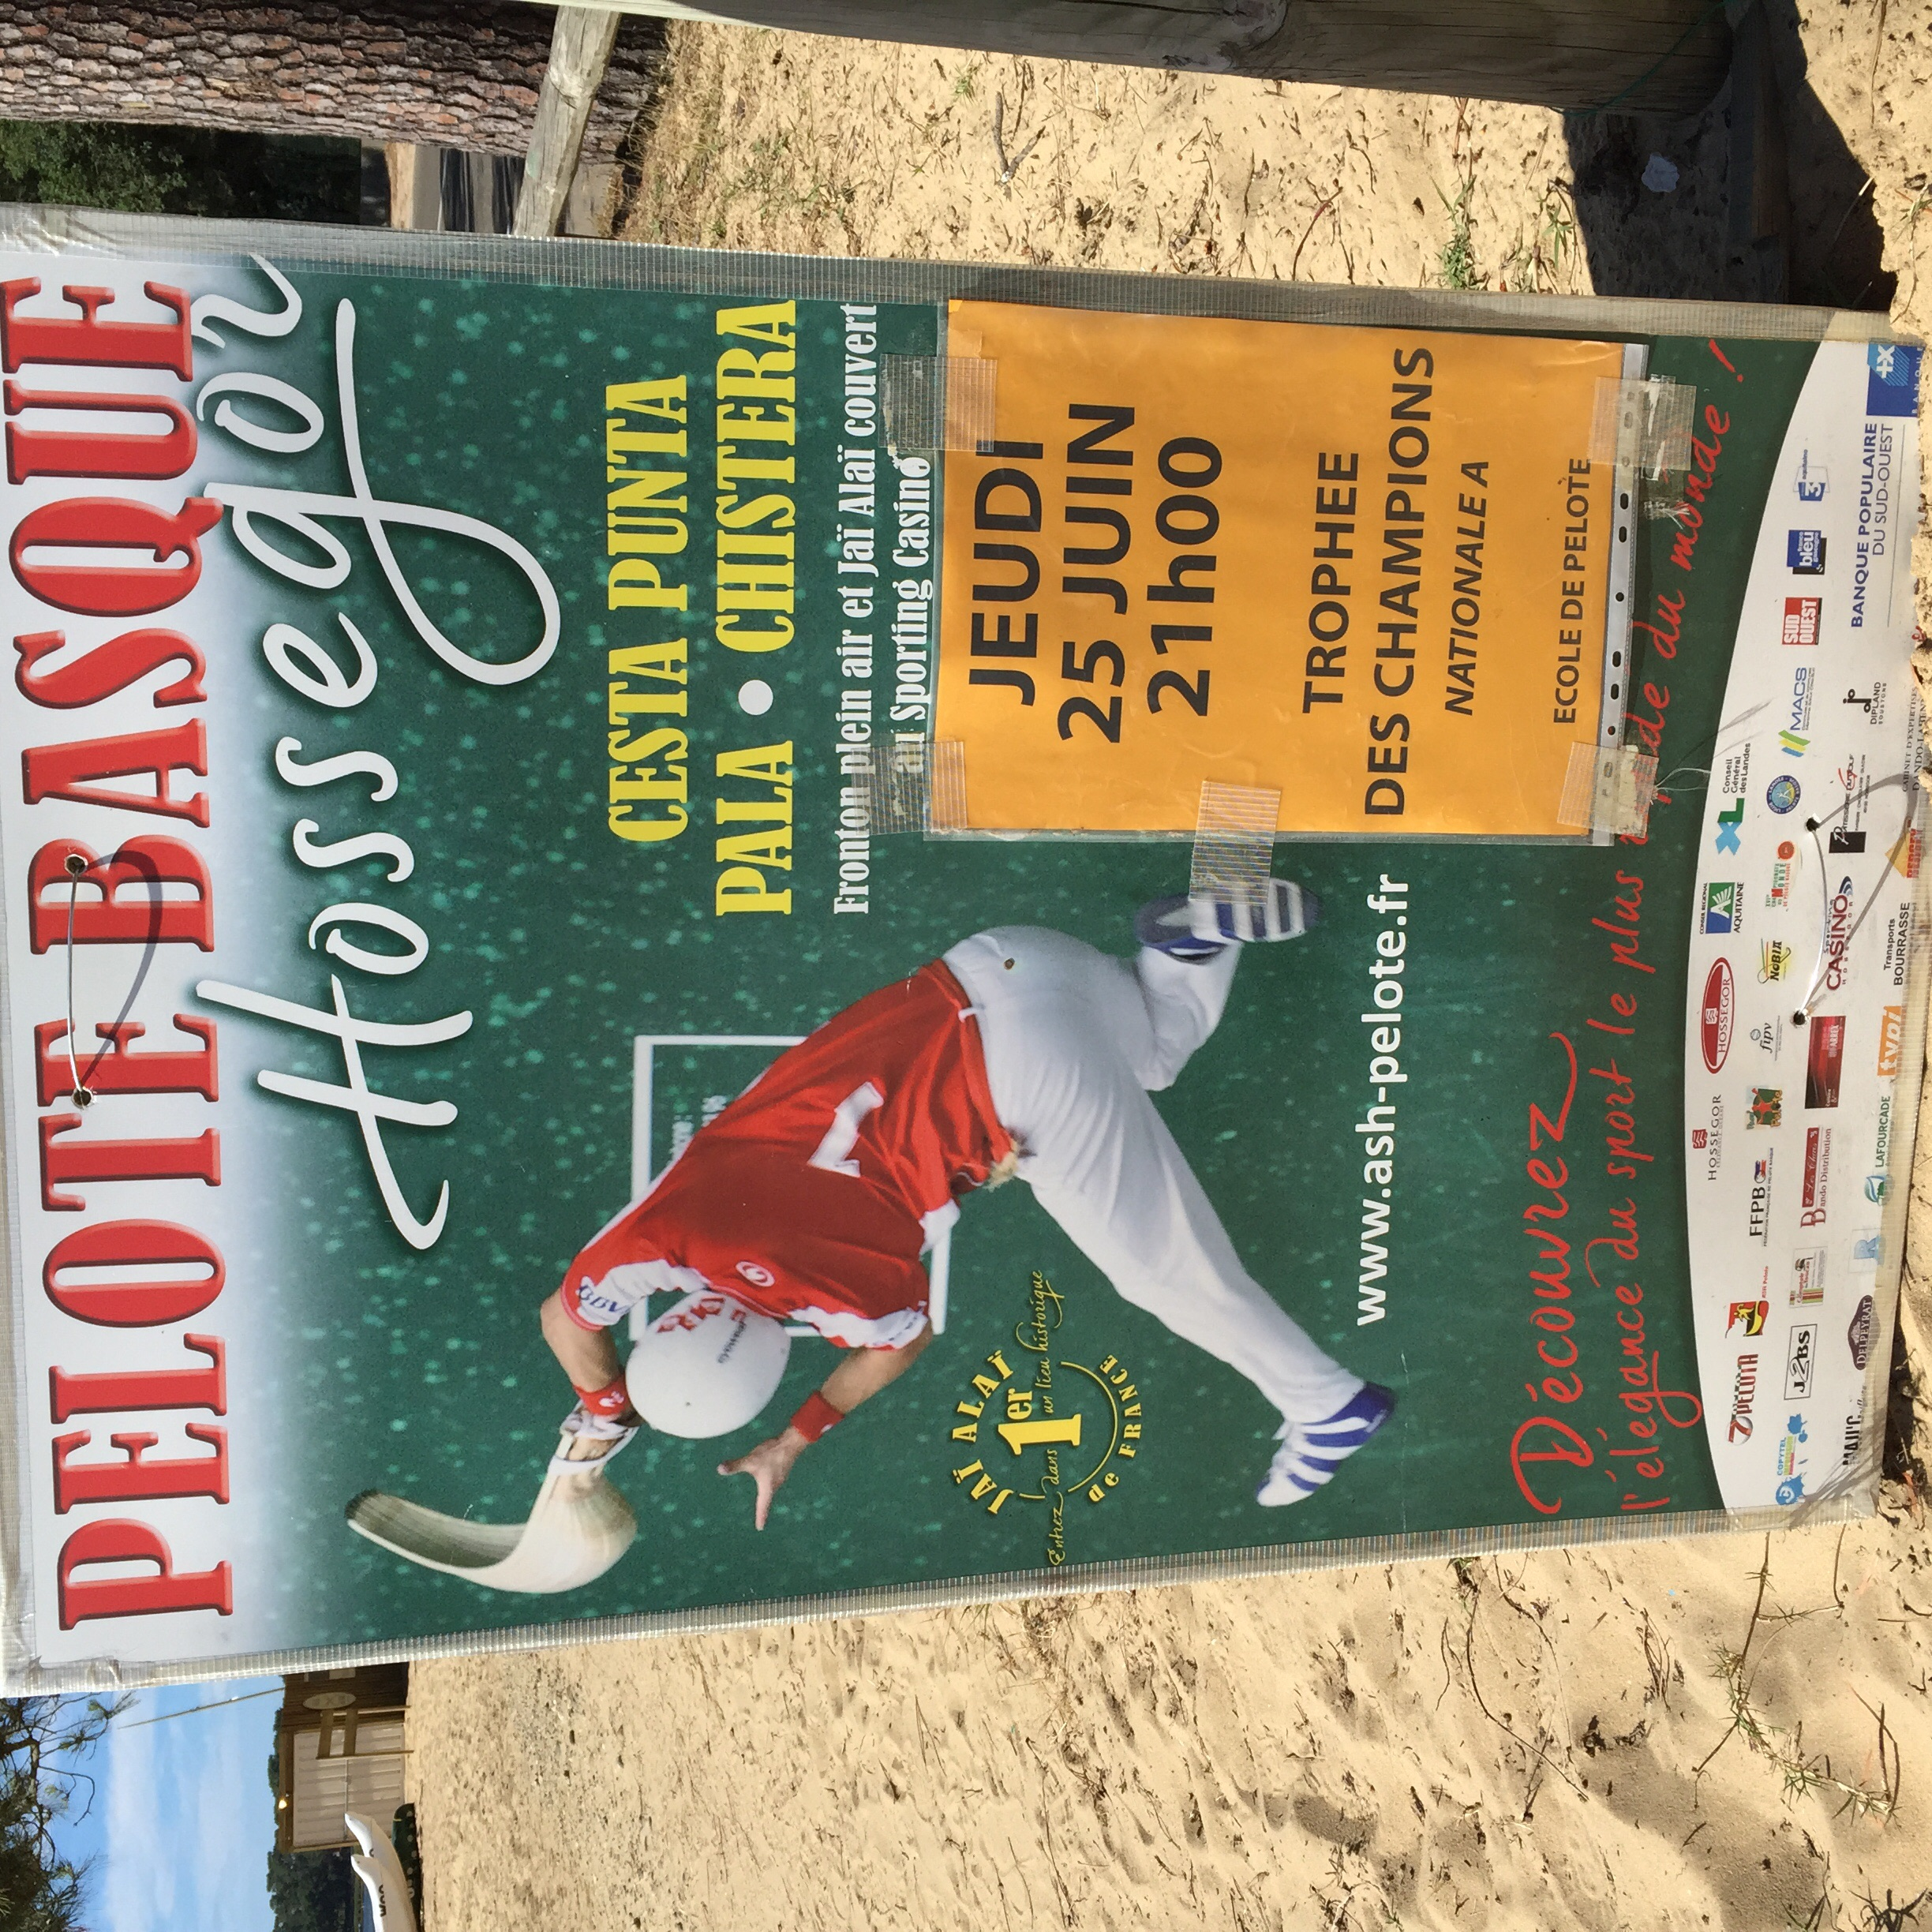 I've wanted to see this sport (Jai-Alai or Pelote) live since Burgos. It's THE sport of the Basque region. It just so happens they are holding a championship here in Hossegor tomorrow, 6/25, so I've decided to stick around.